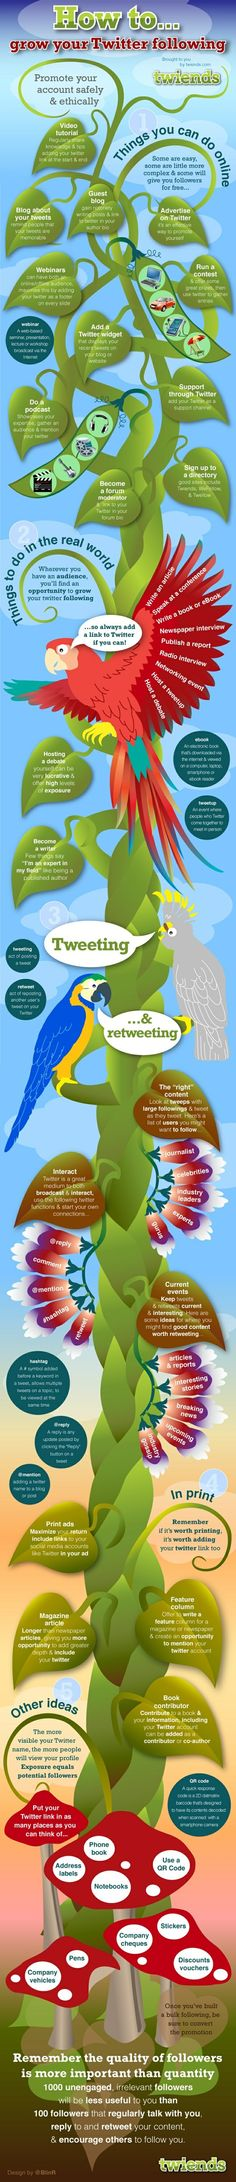 How to leverage Twitter and gain more followers and brand ambassadors for your business [Nice Inforgraphic]